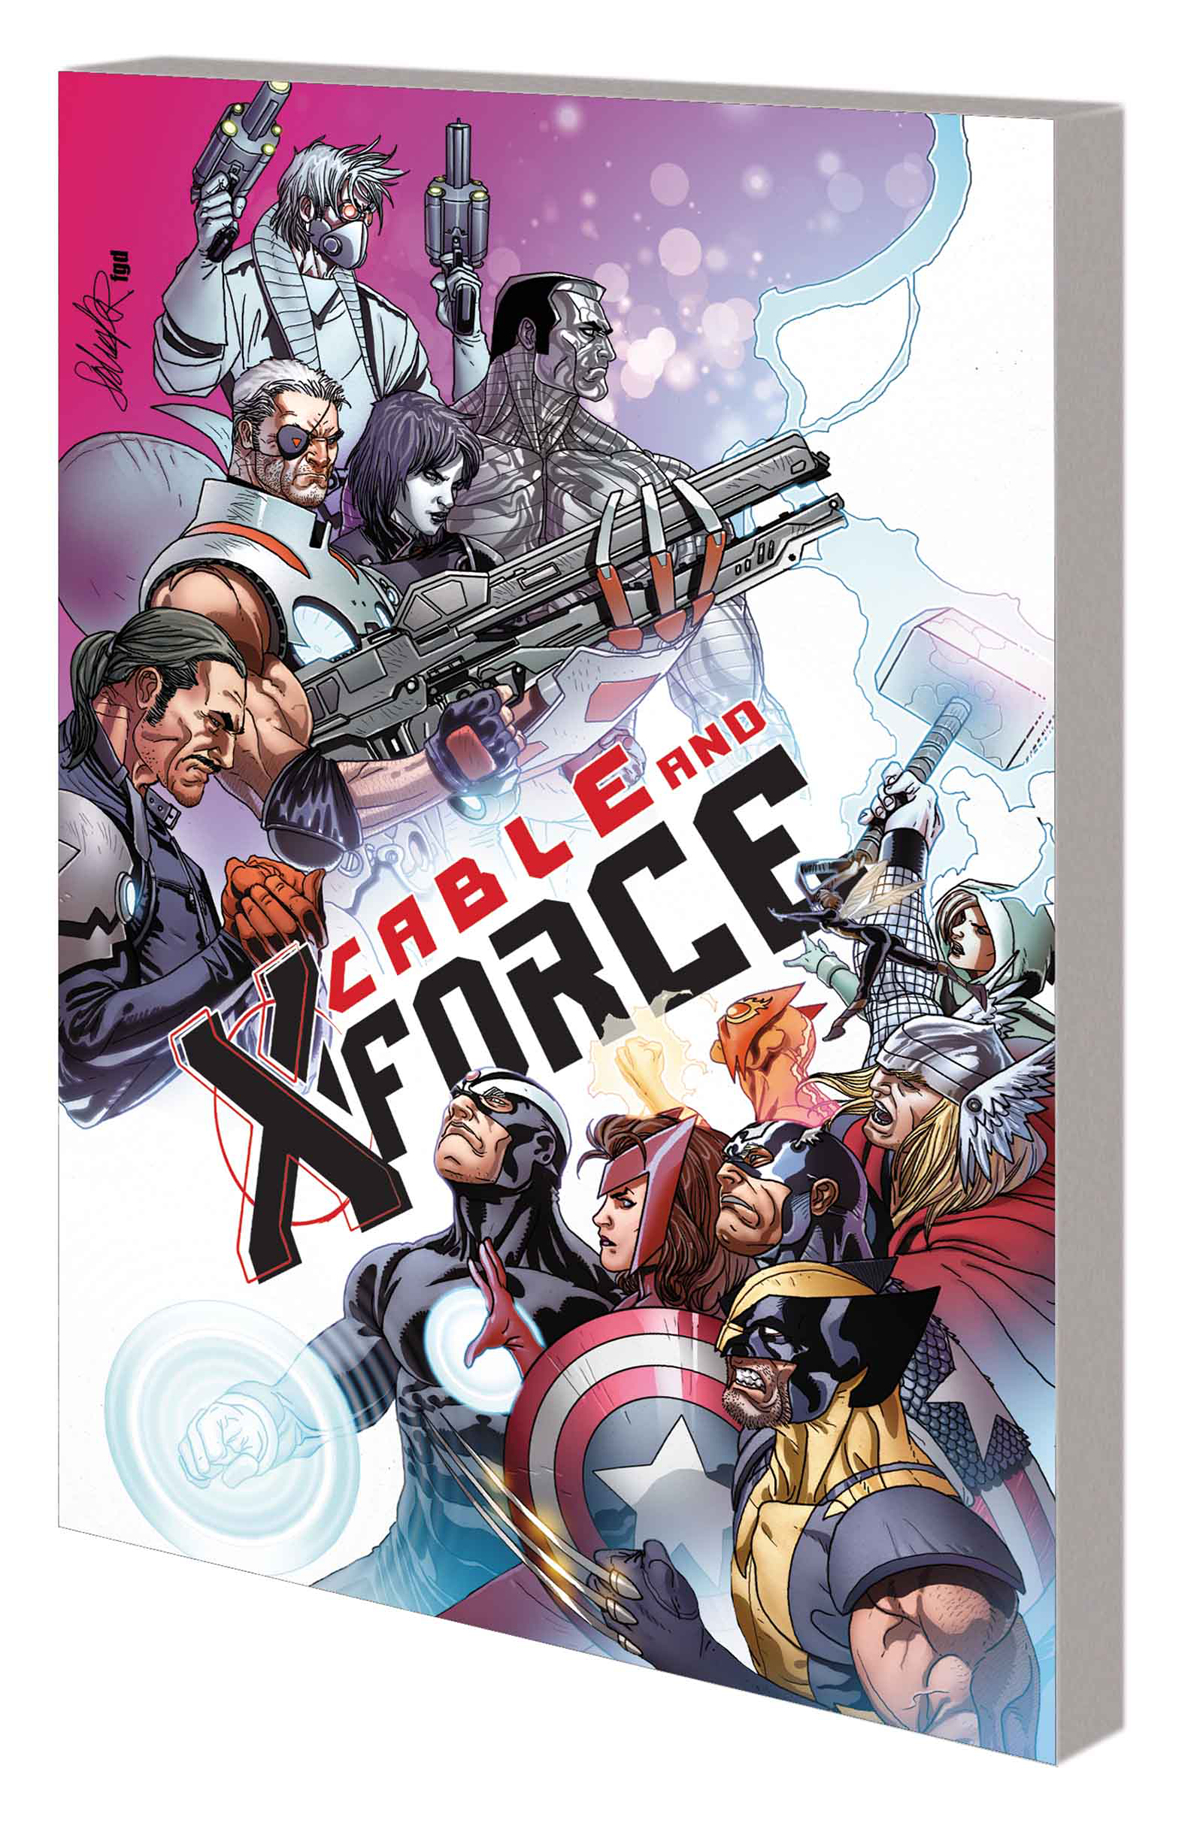 CABLE AND X-FORCE TP VOL 03 THIS WONT END WELL